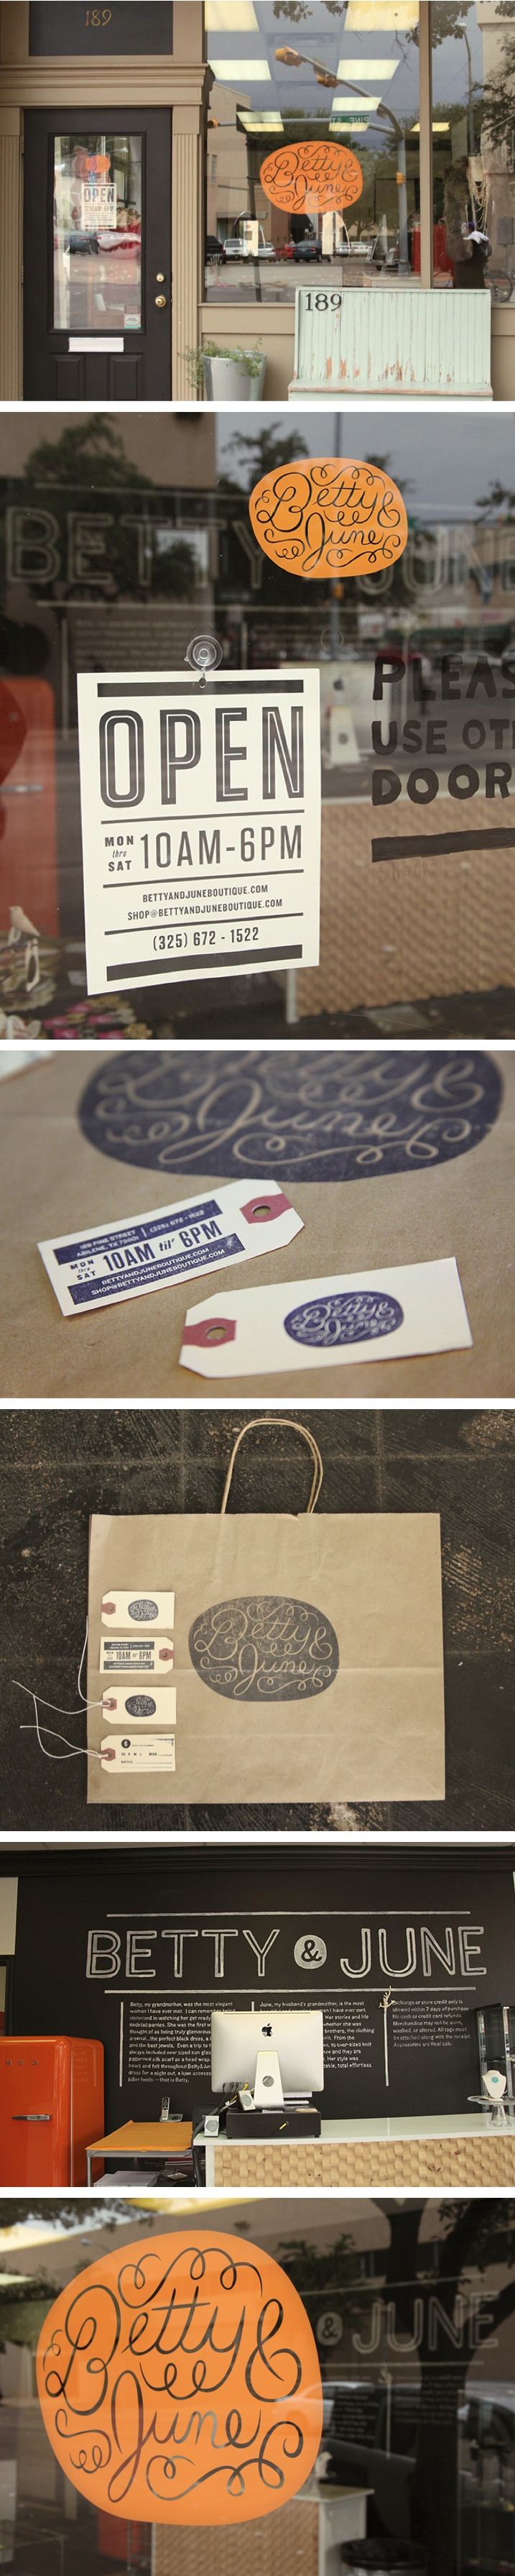 Betty & June branding